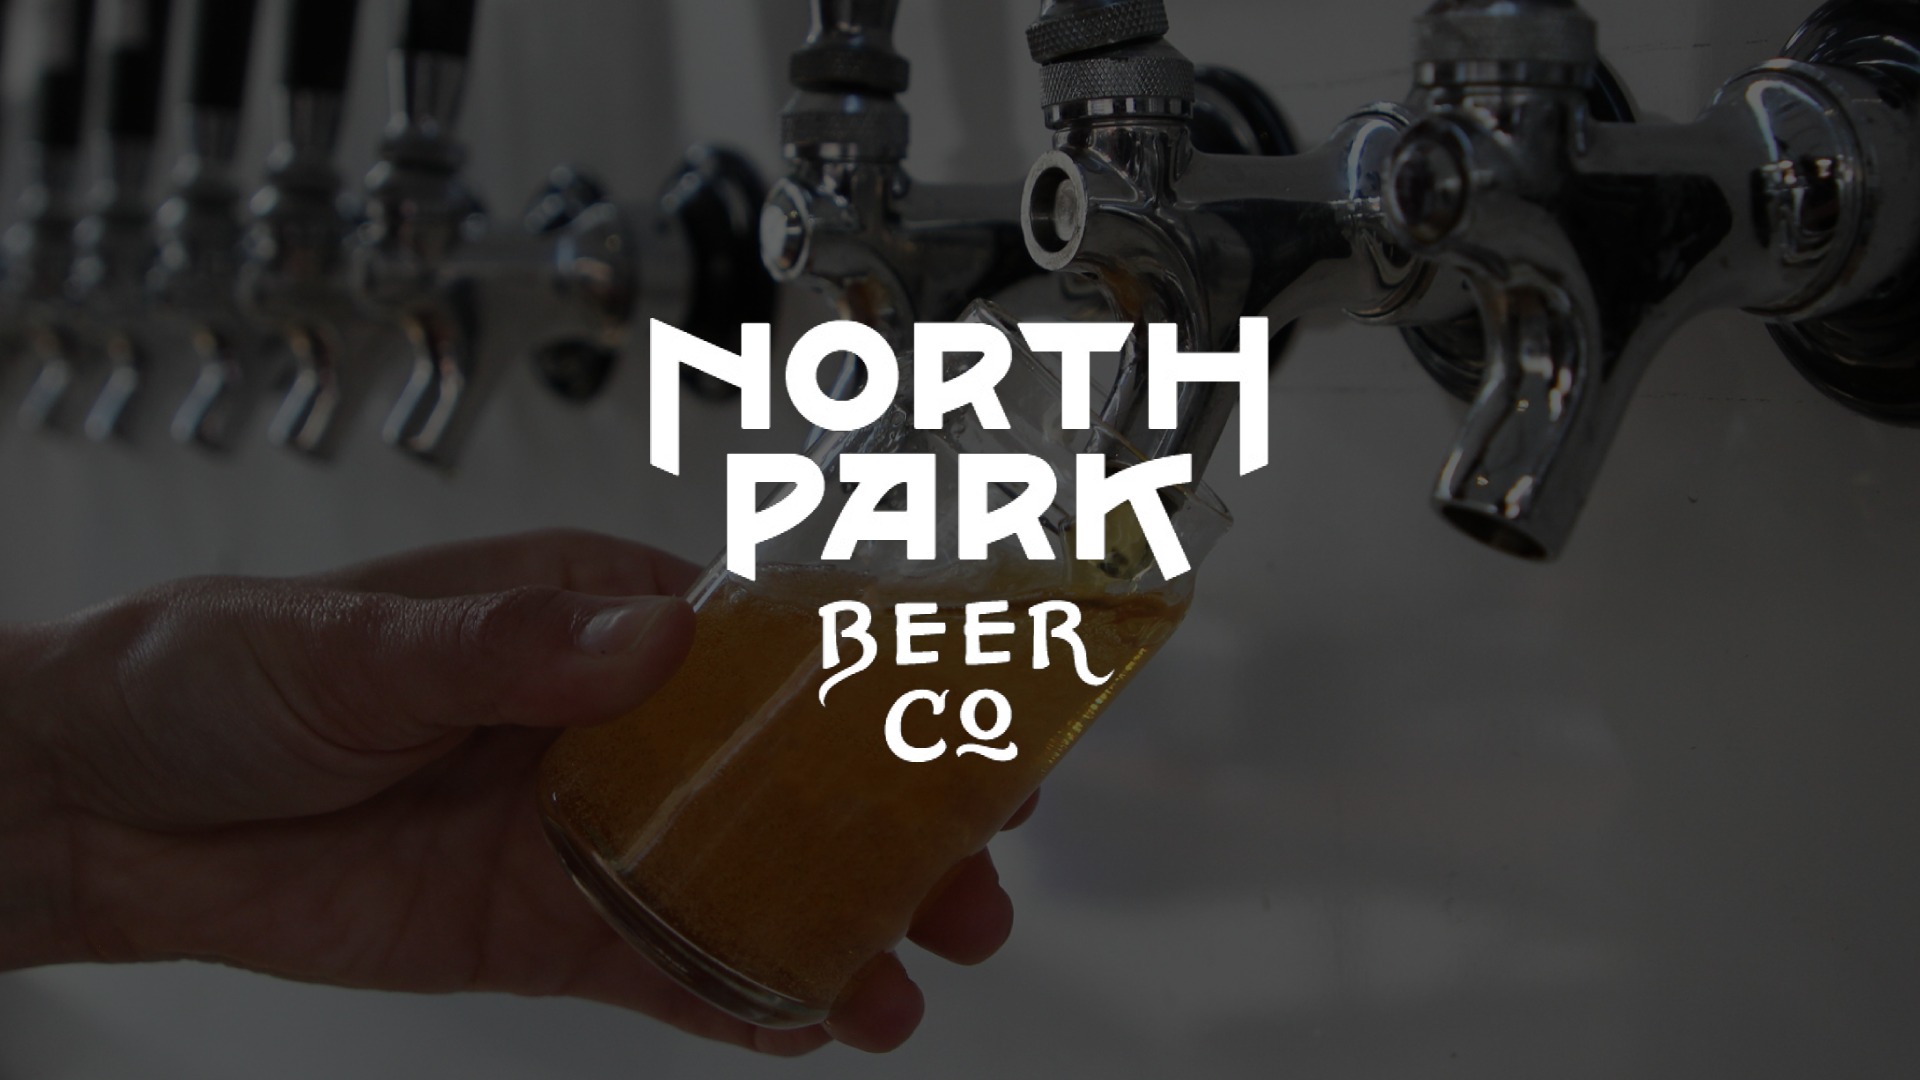 North Park Beer Co. 3rd Anniversary IPA Fest